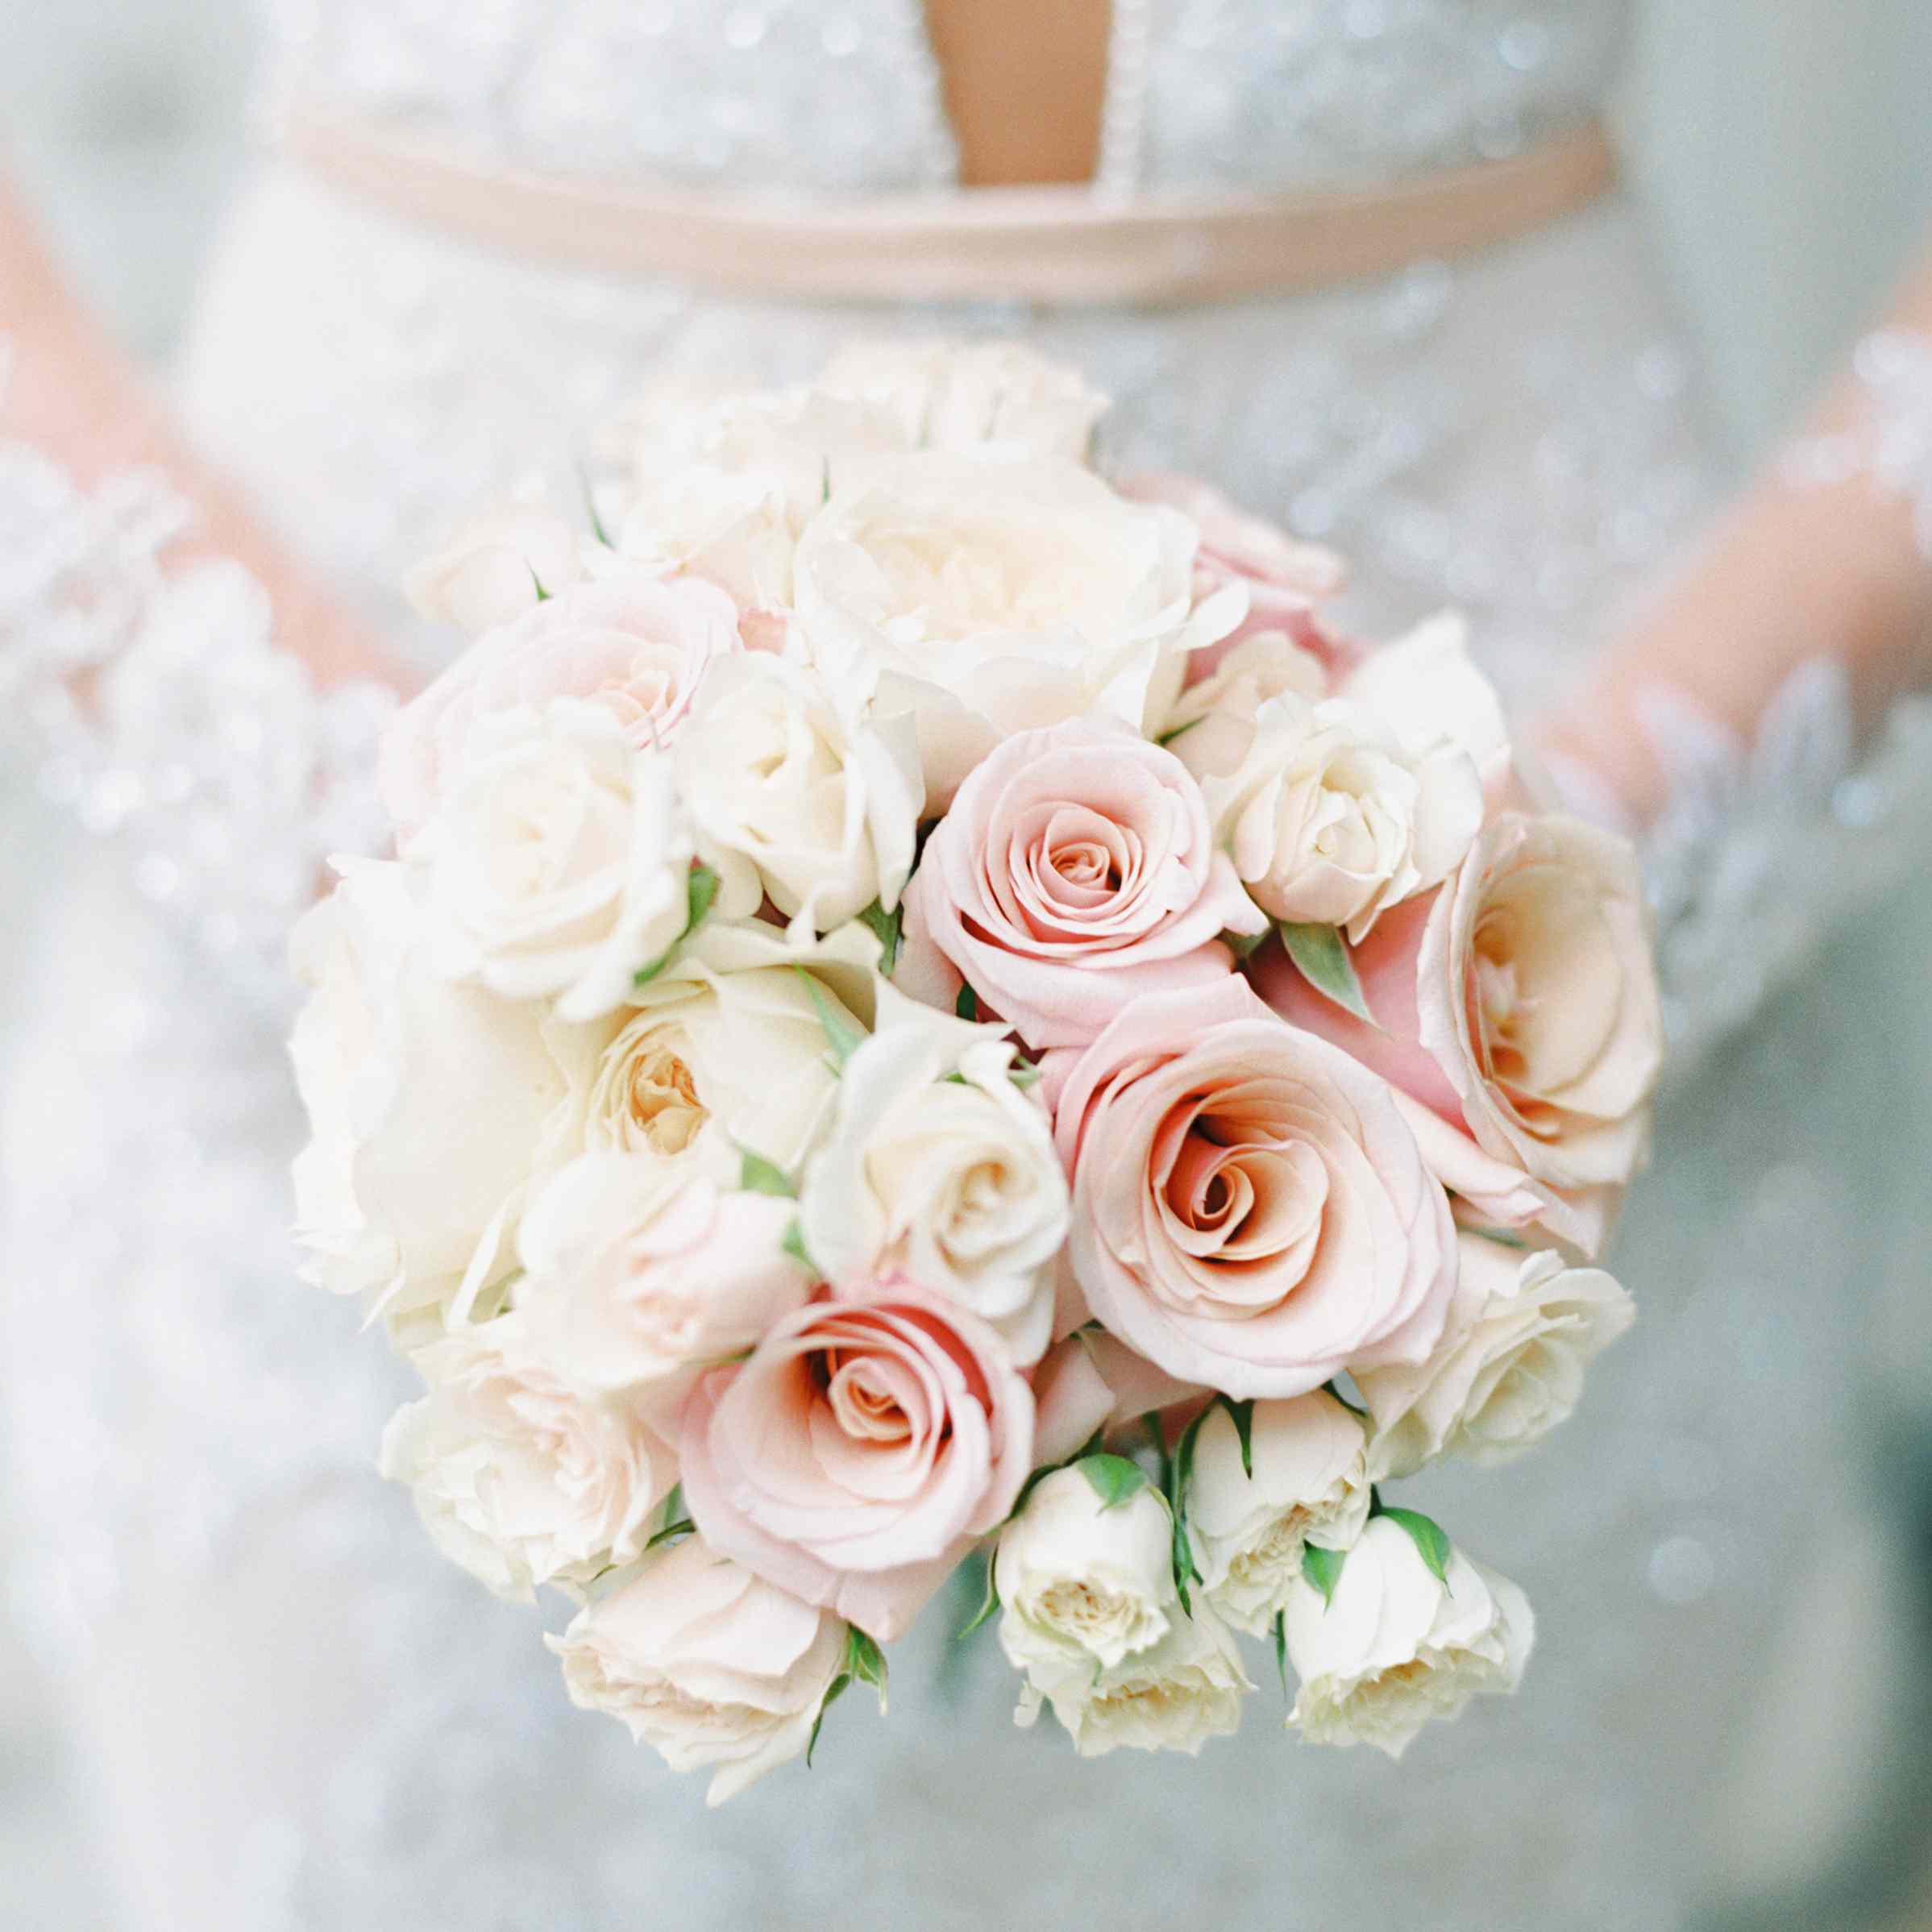 The 10 Most Popular Flowers for Weddings